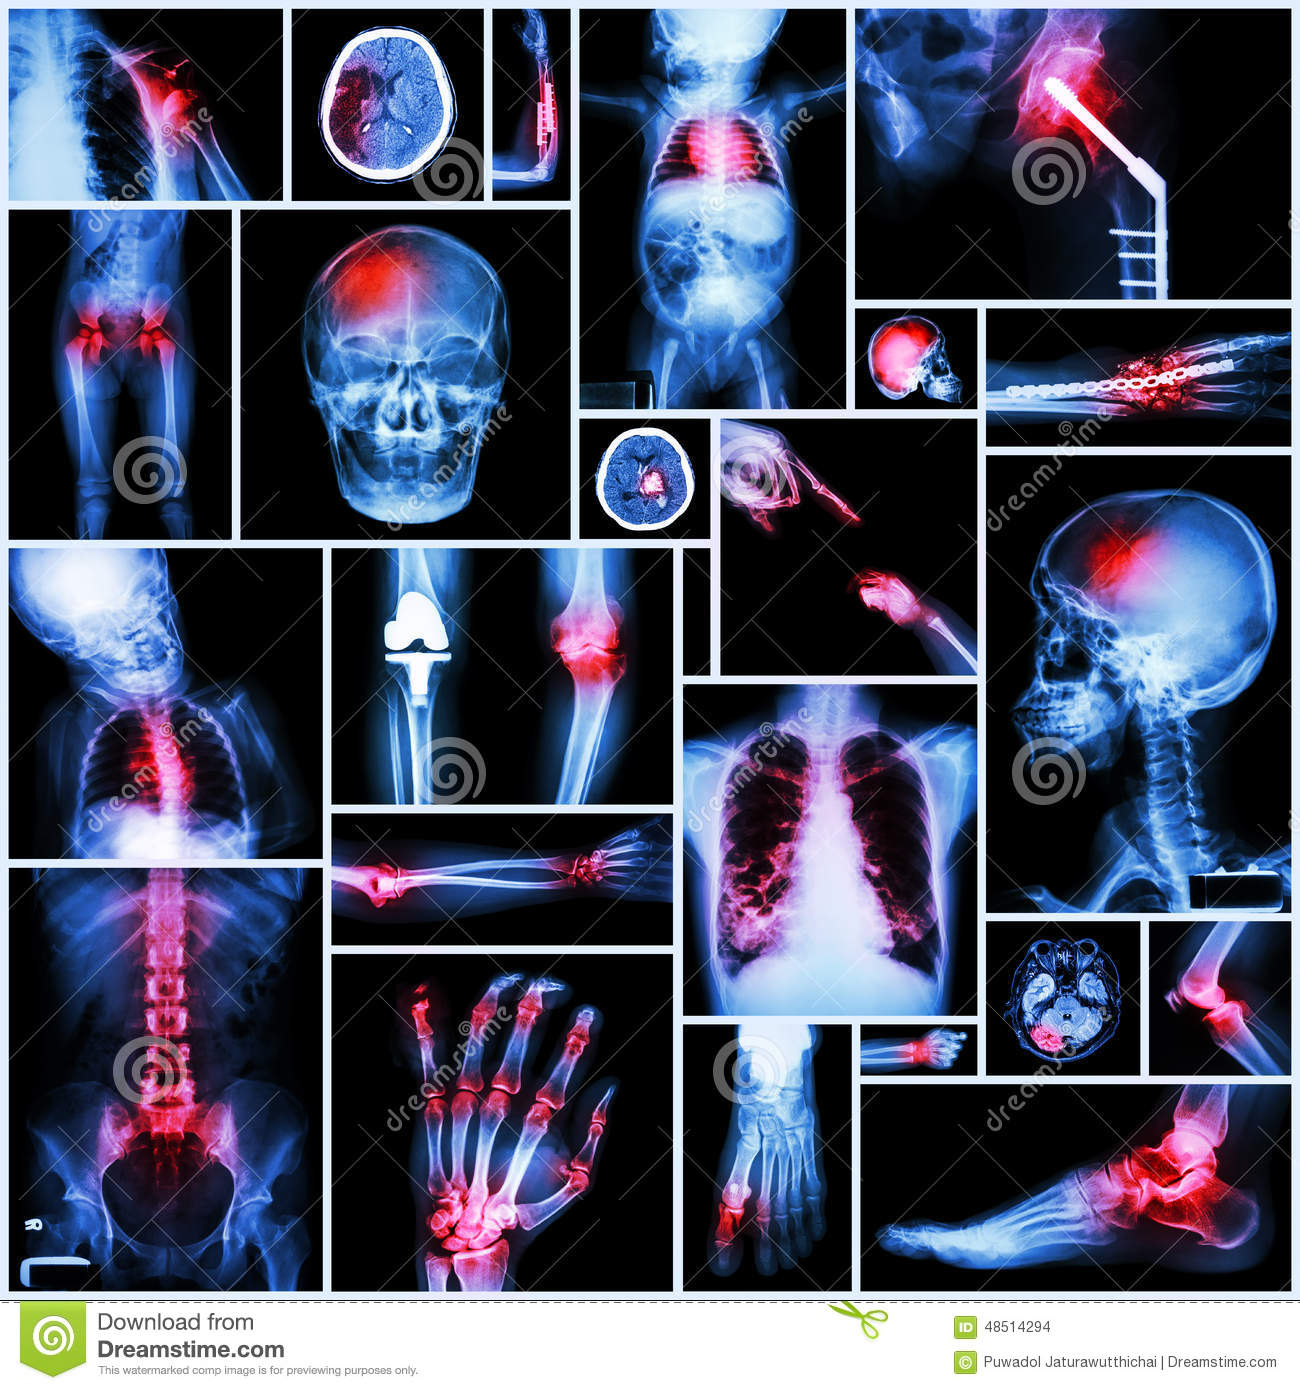 Collection of X-ray multiple part of human,Orthopedic operation and multiple disease (Shoulder